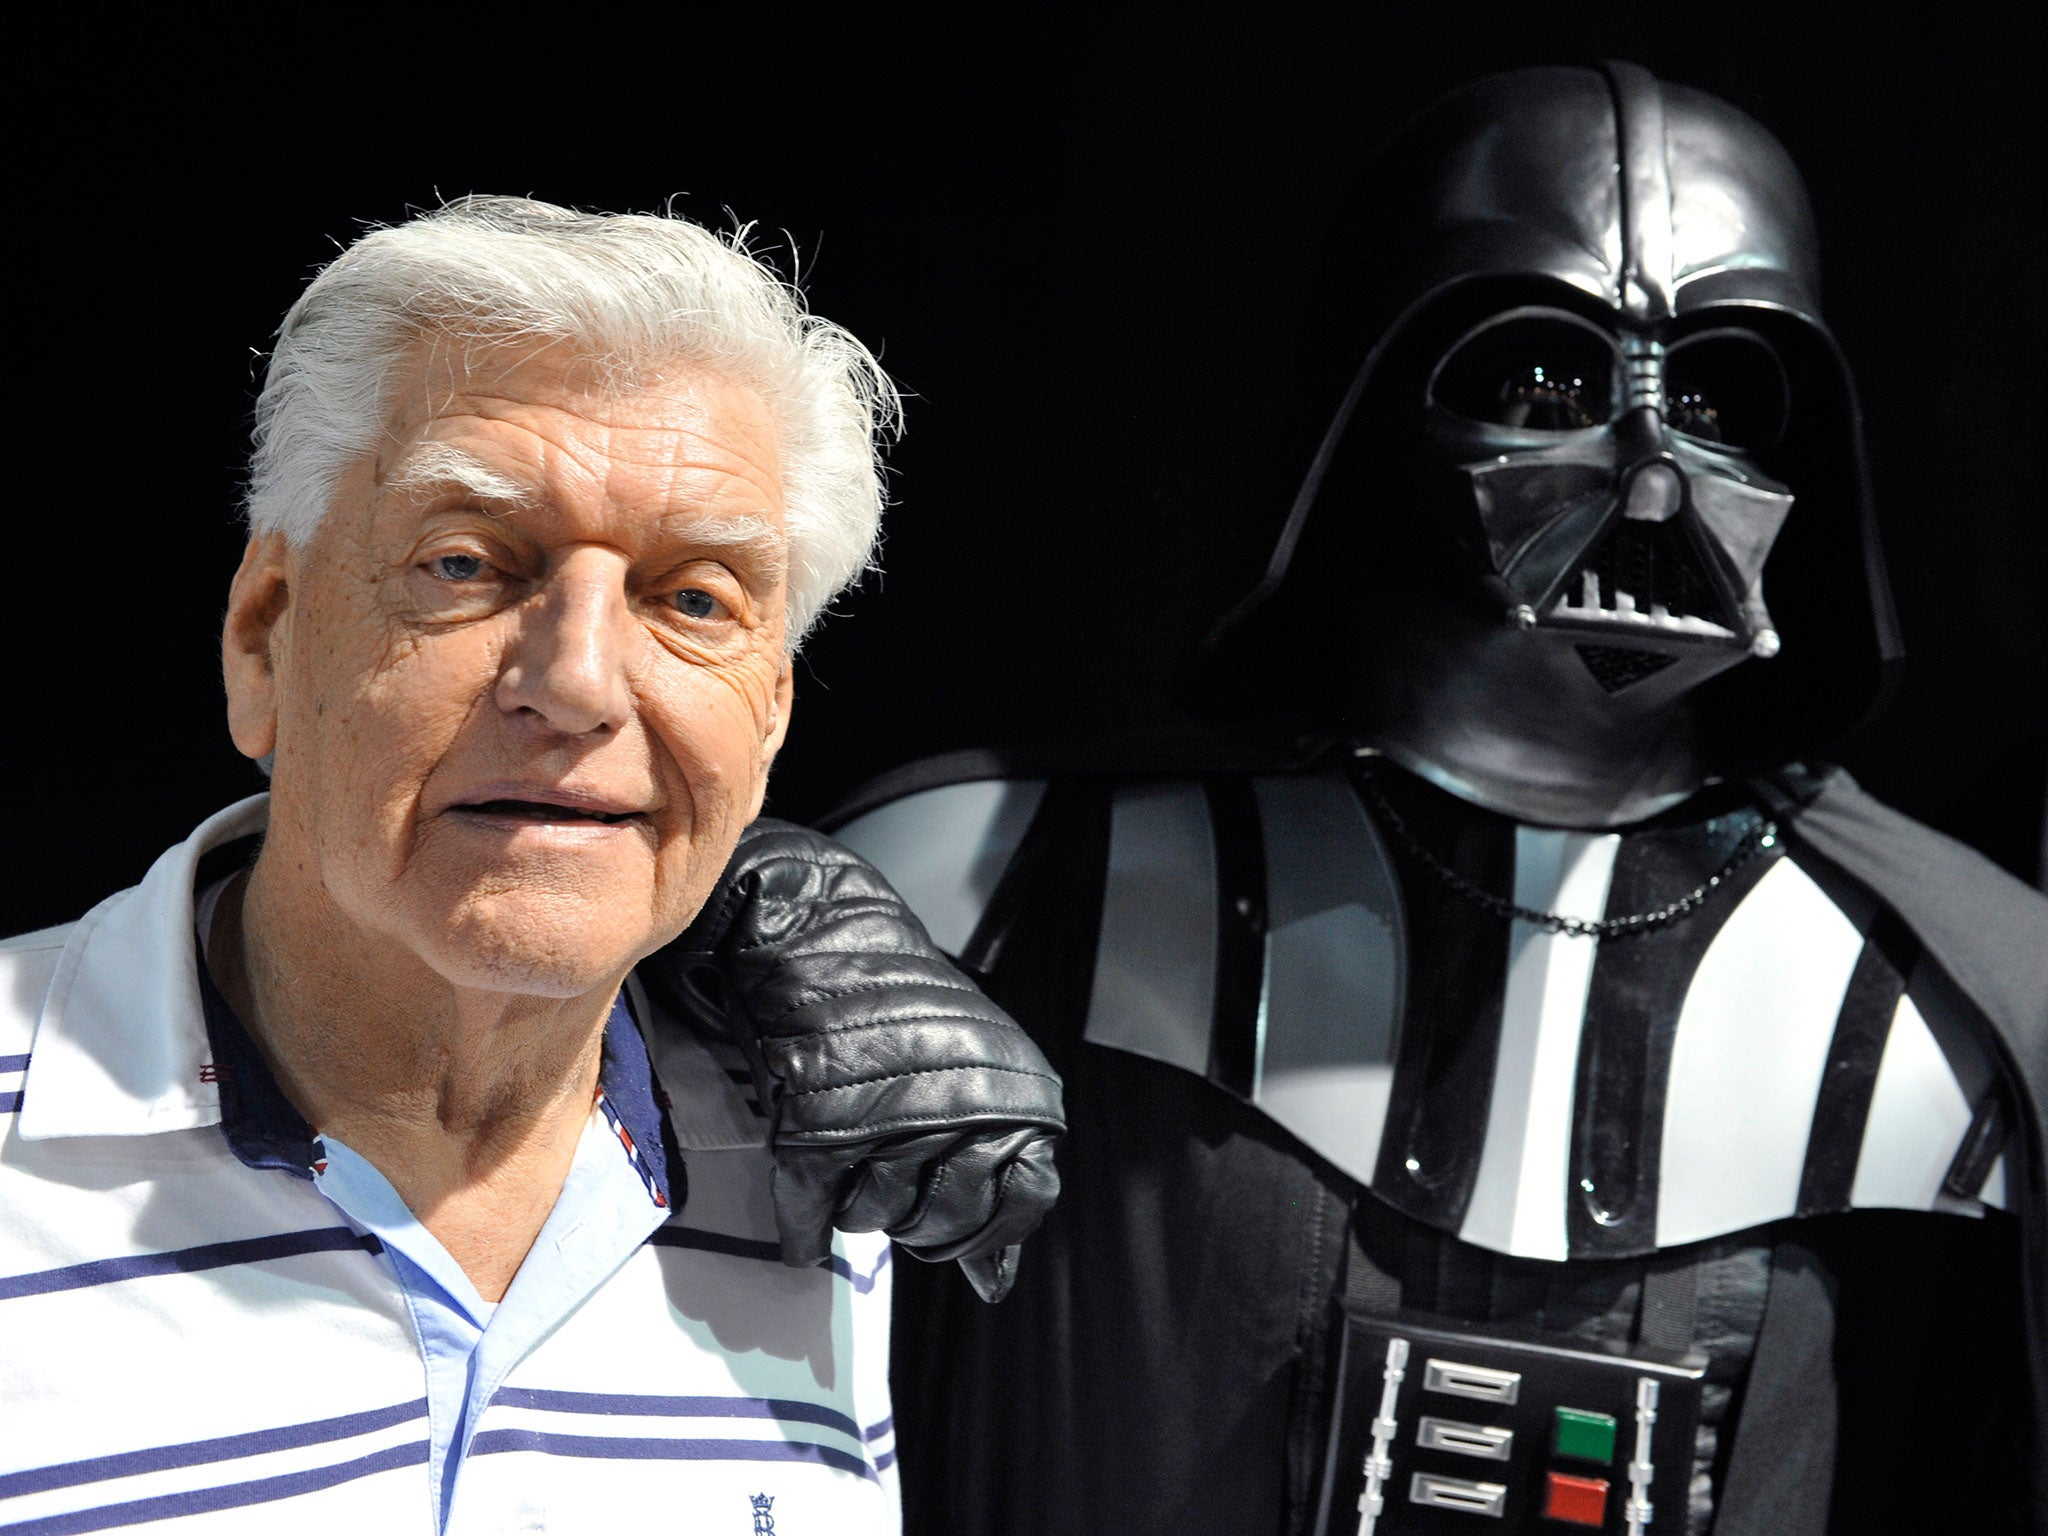 david prowse as vader